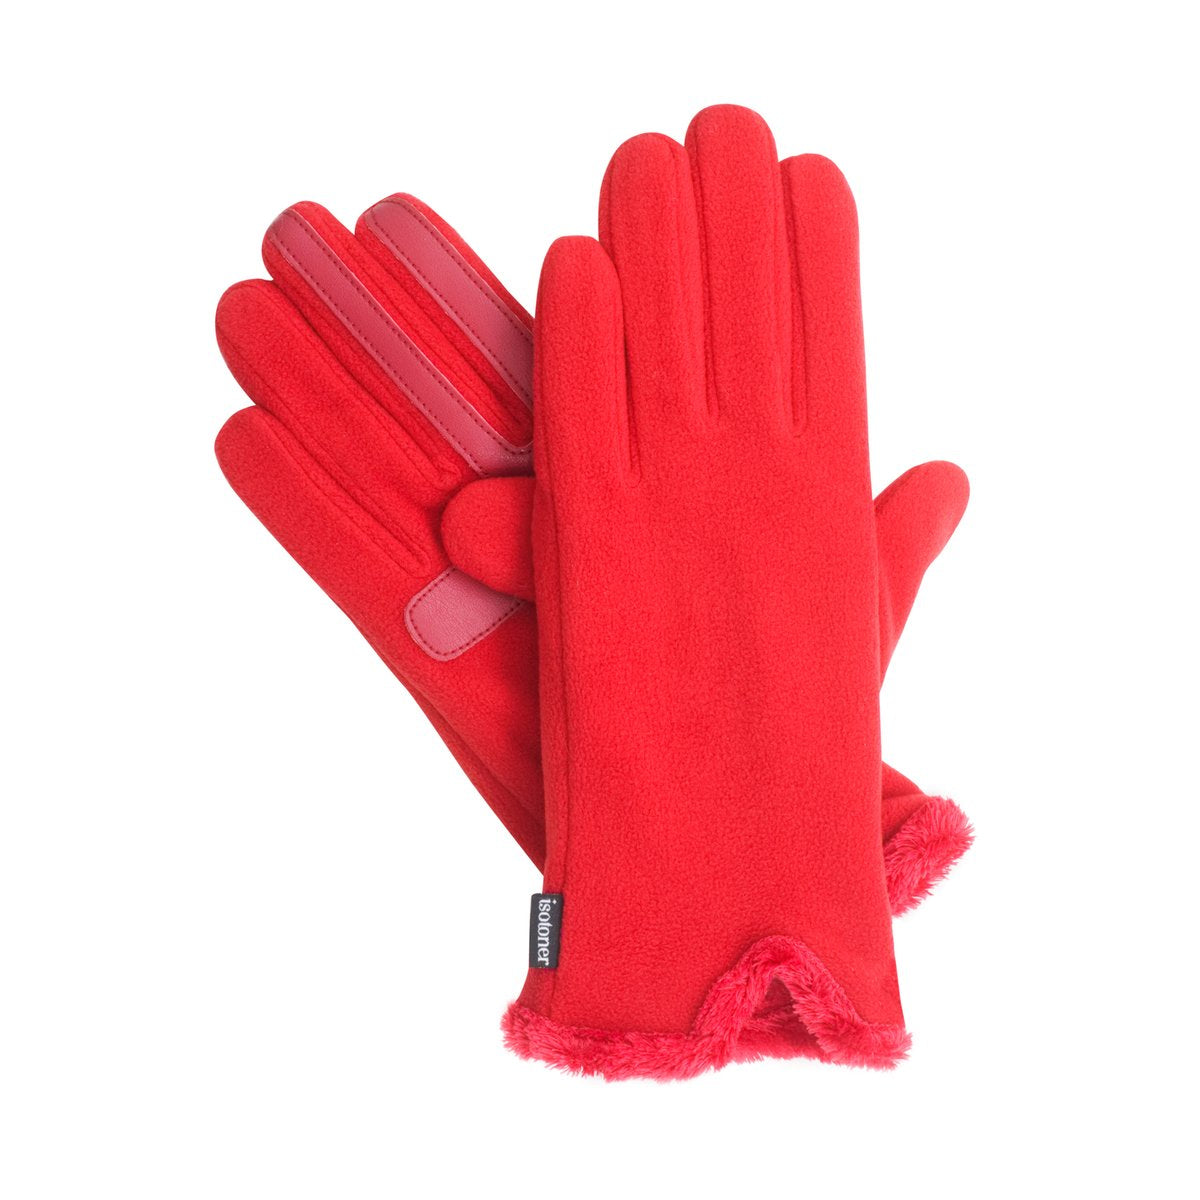 Isotoner Women's SmarTouch Stretch Fleece Gloves with SmartDri 30124 RED